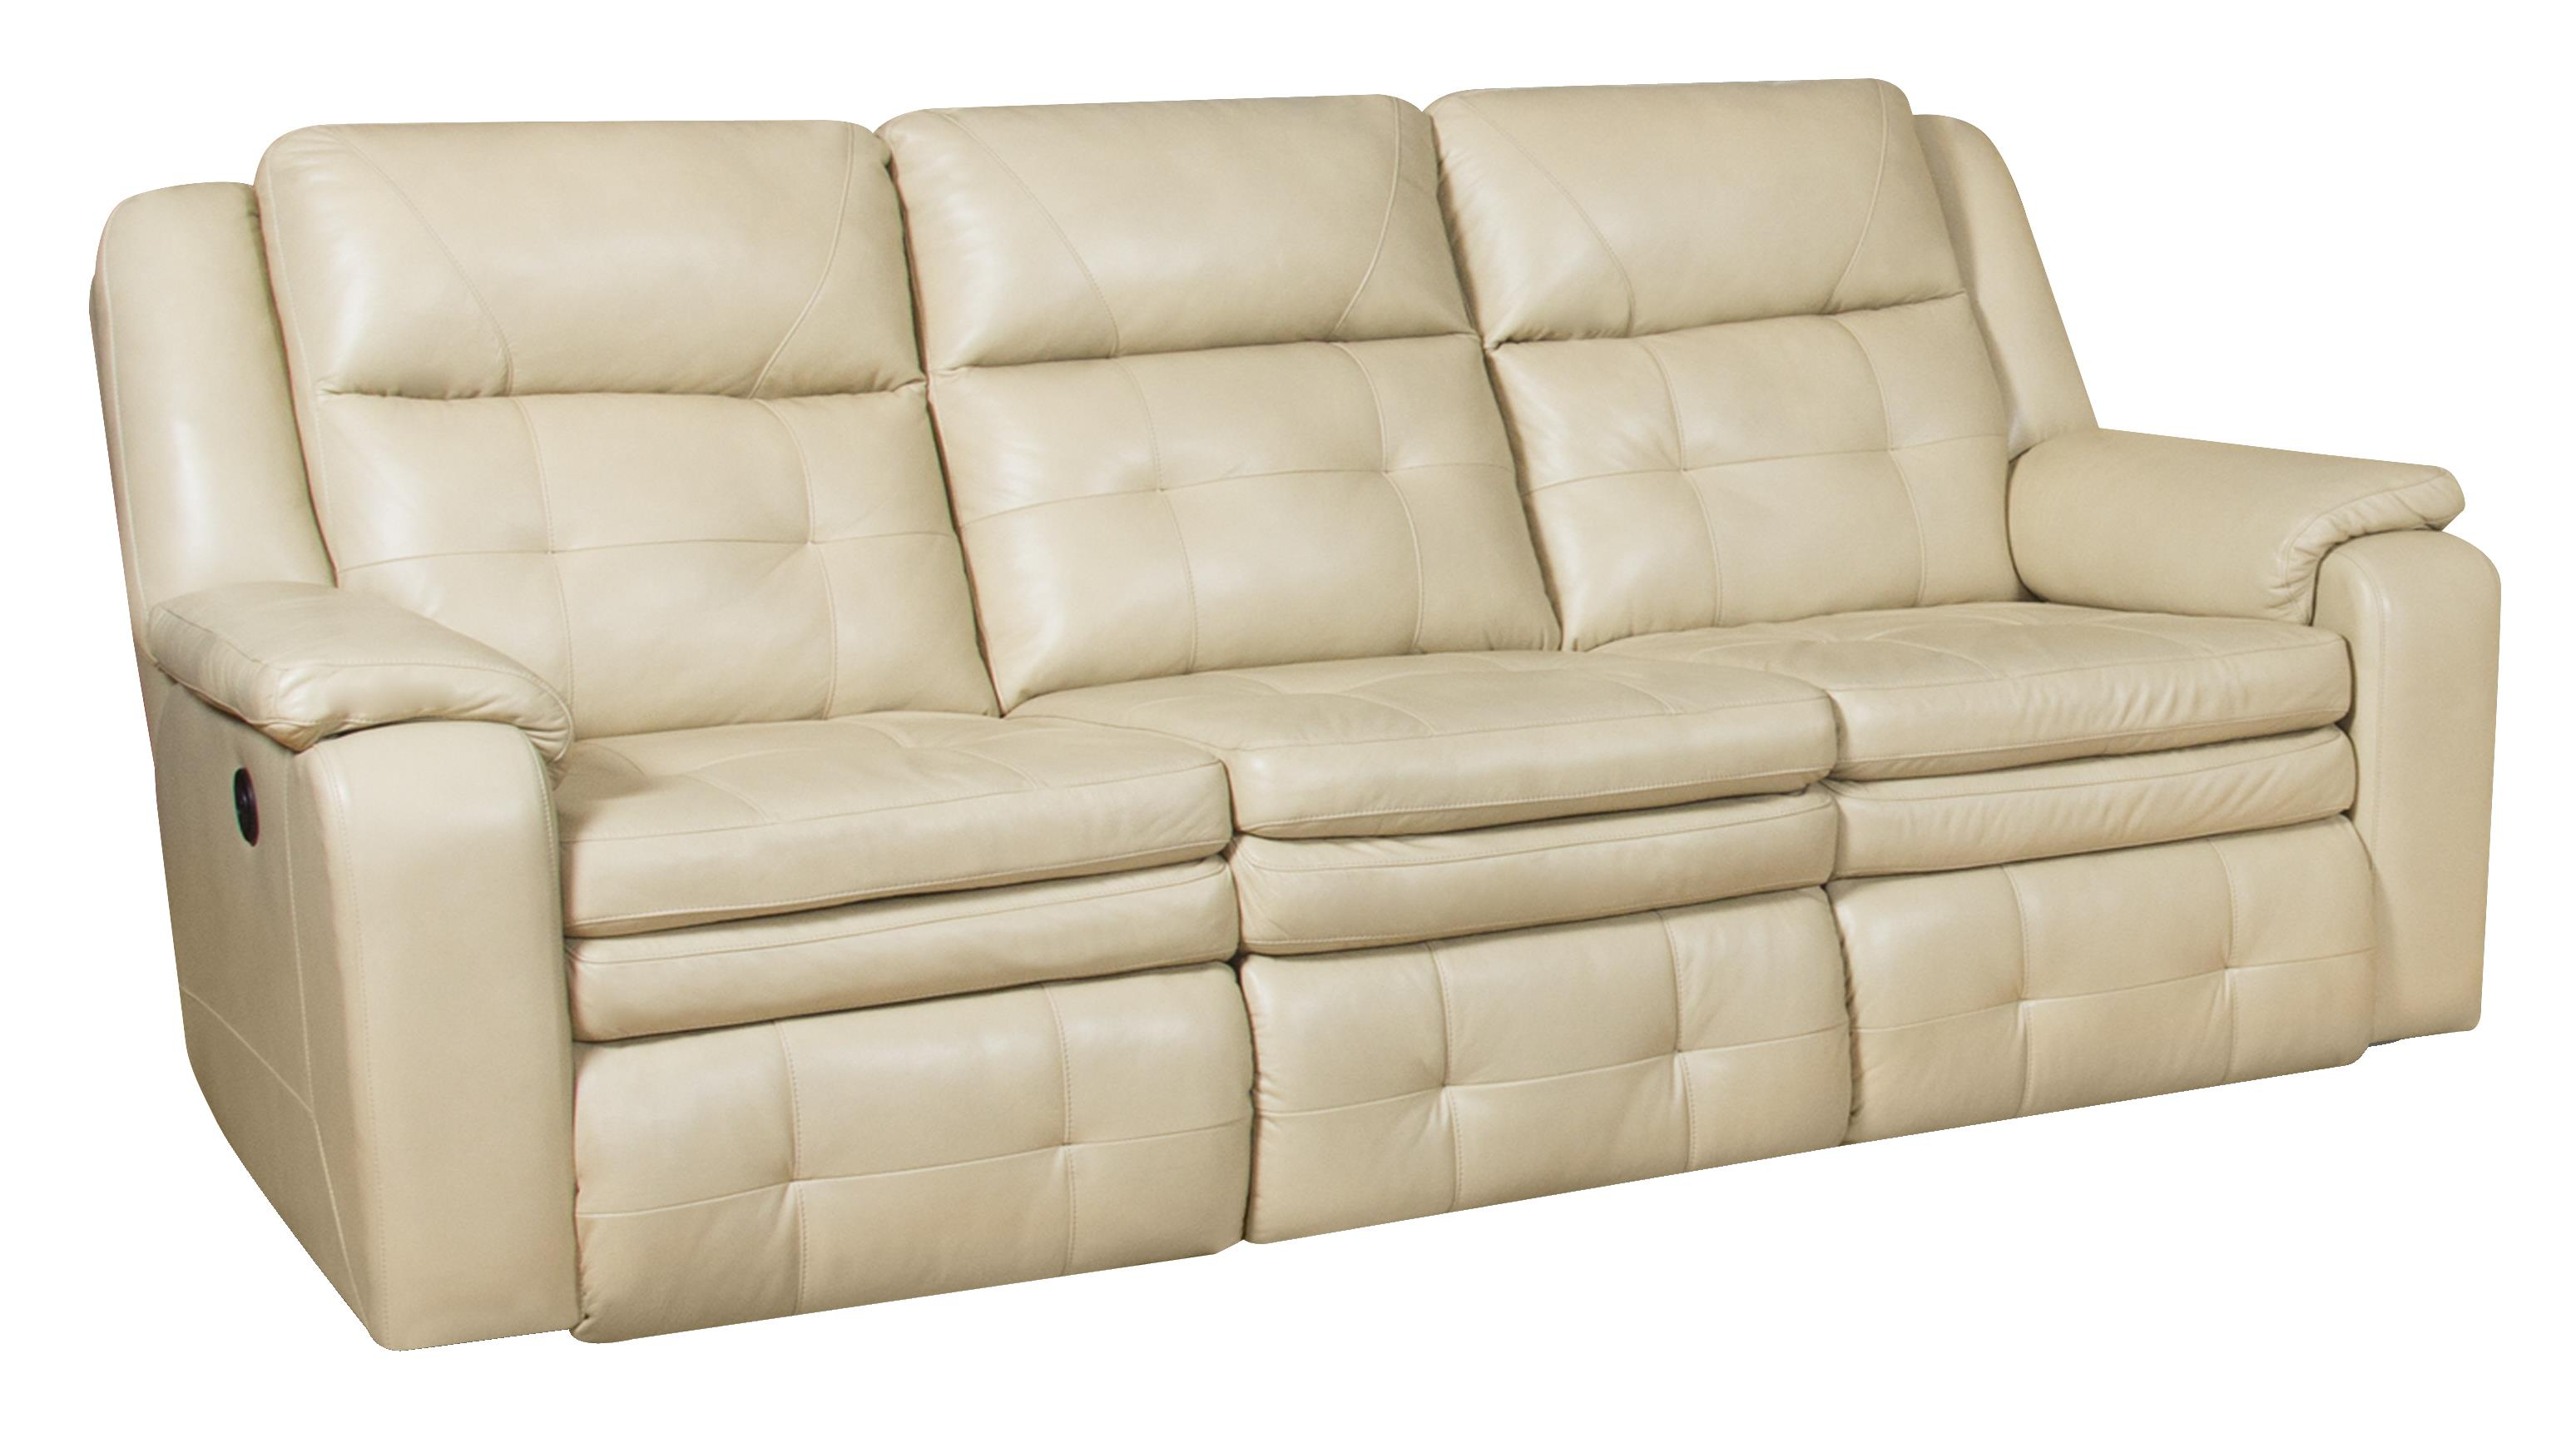 Double Reclining Sofa With Headrest